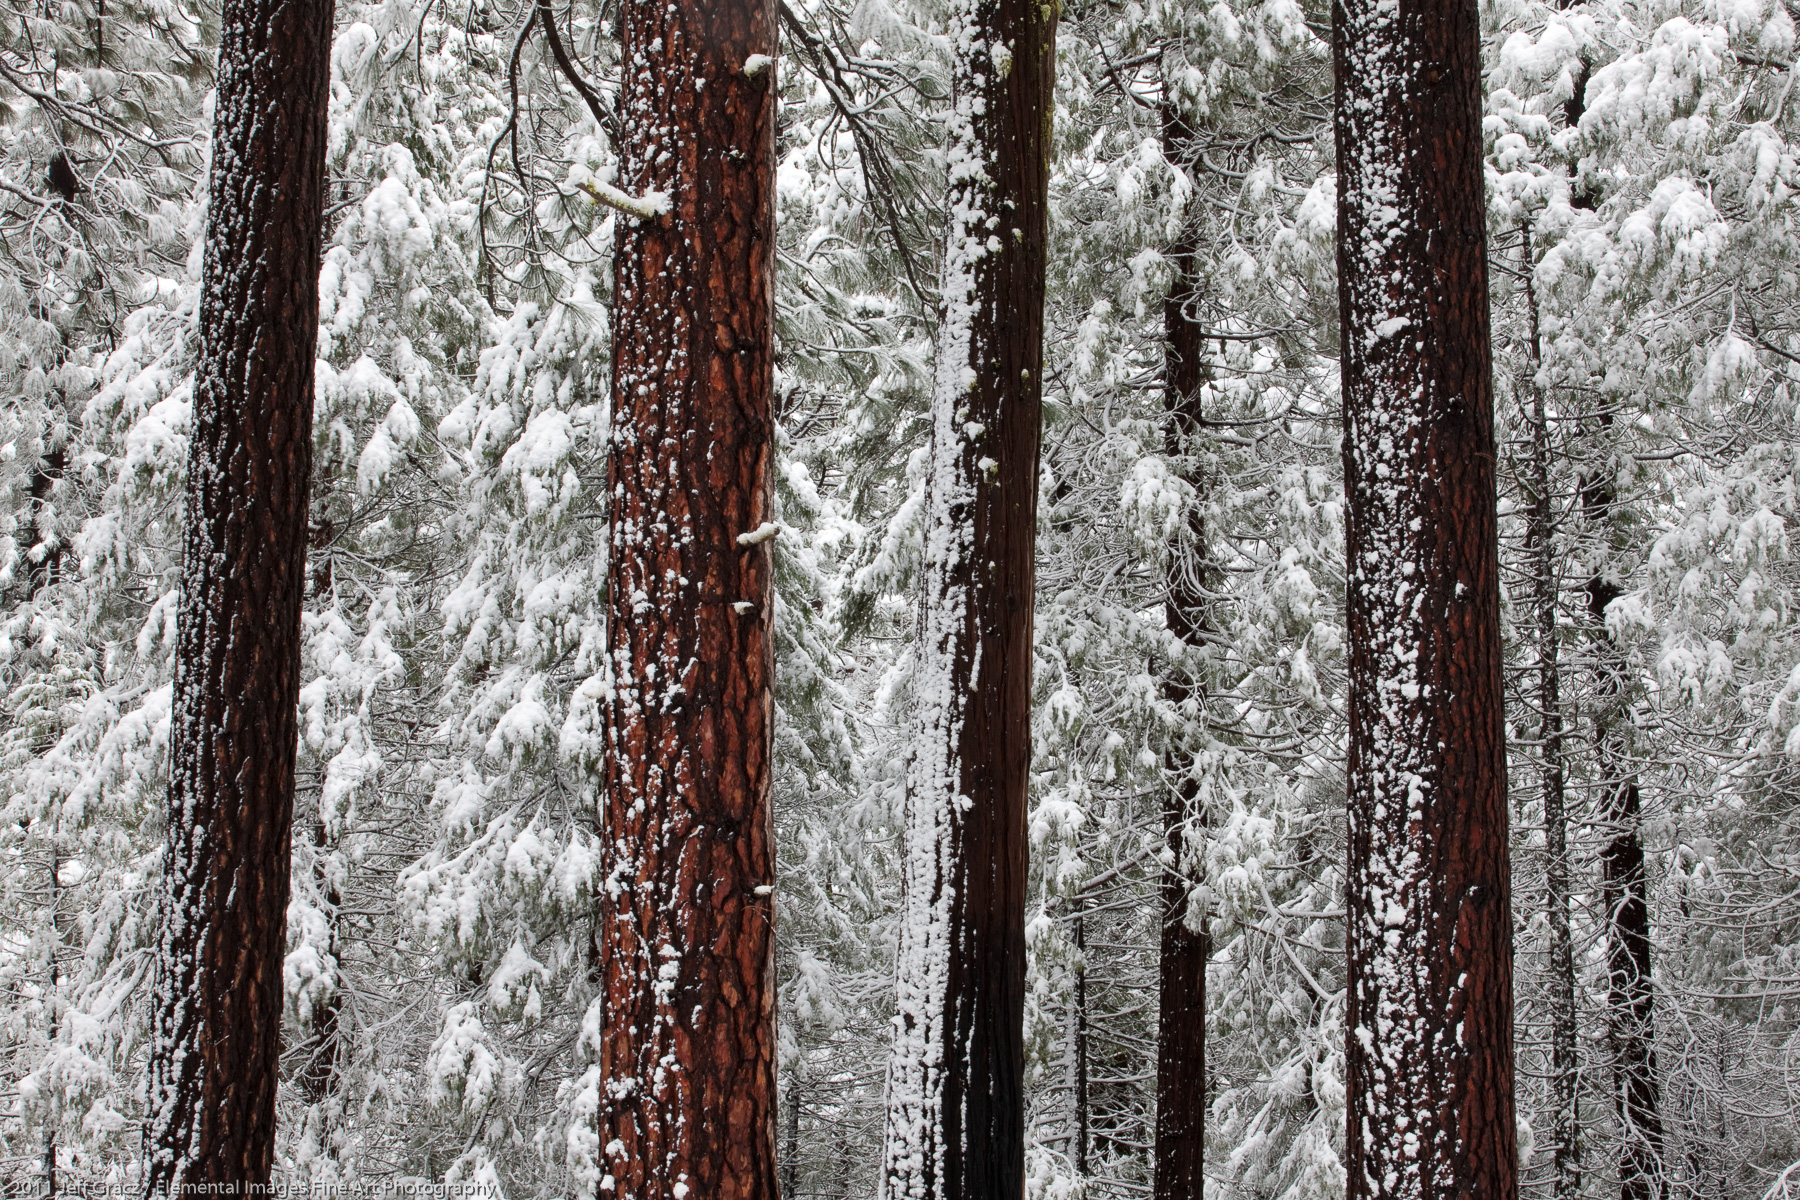 Winter Trees in Yosemite | Yosemite National Park | CA | USA - © 2011 Jeff Gracz / Elemental Images Fine Art Photography - All Rights Reserved Worldwide